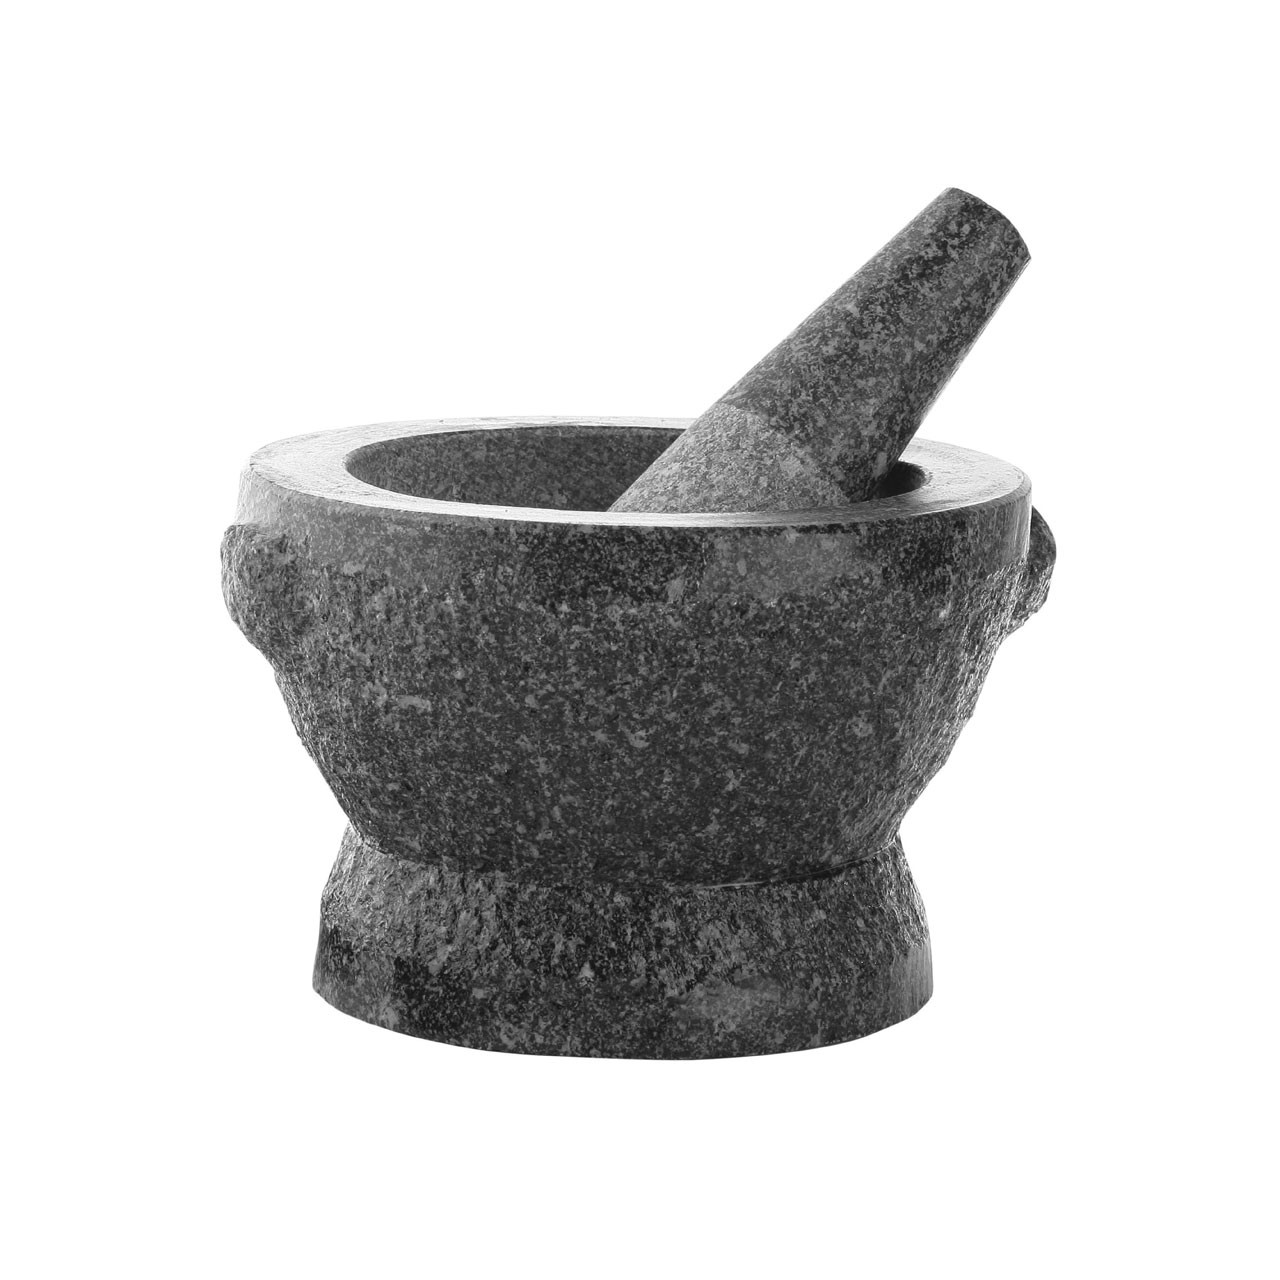 Mortar and Pestle - Granite